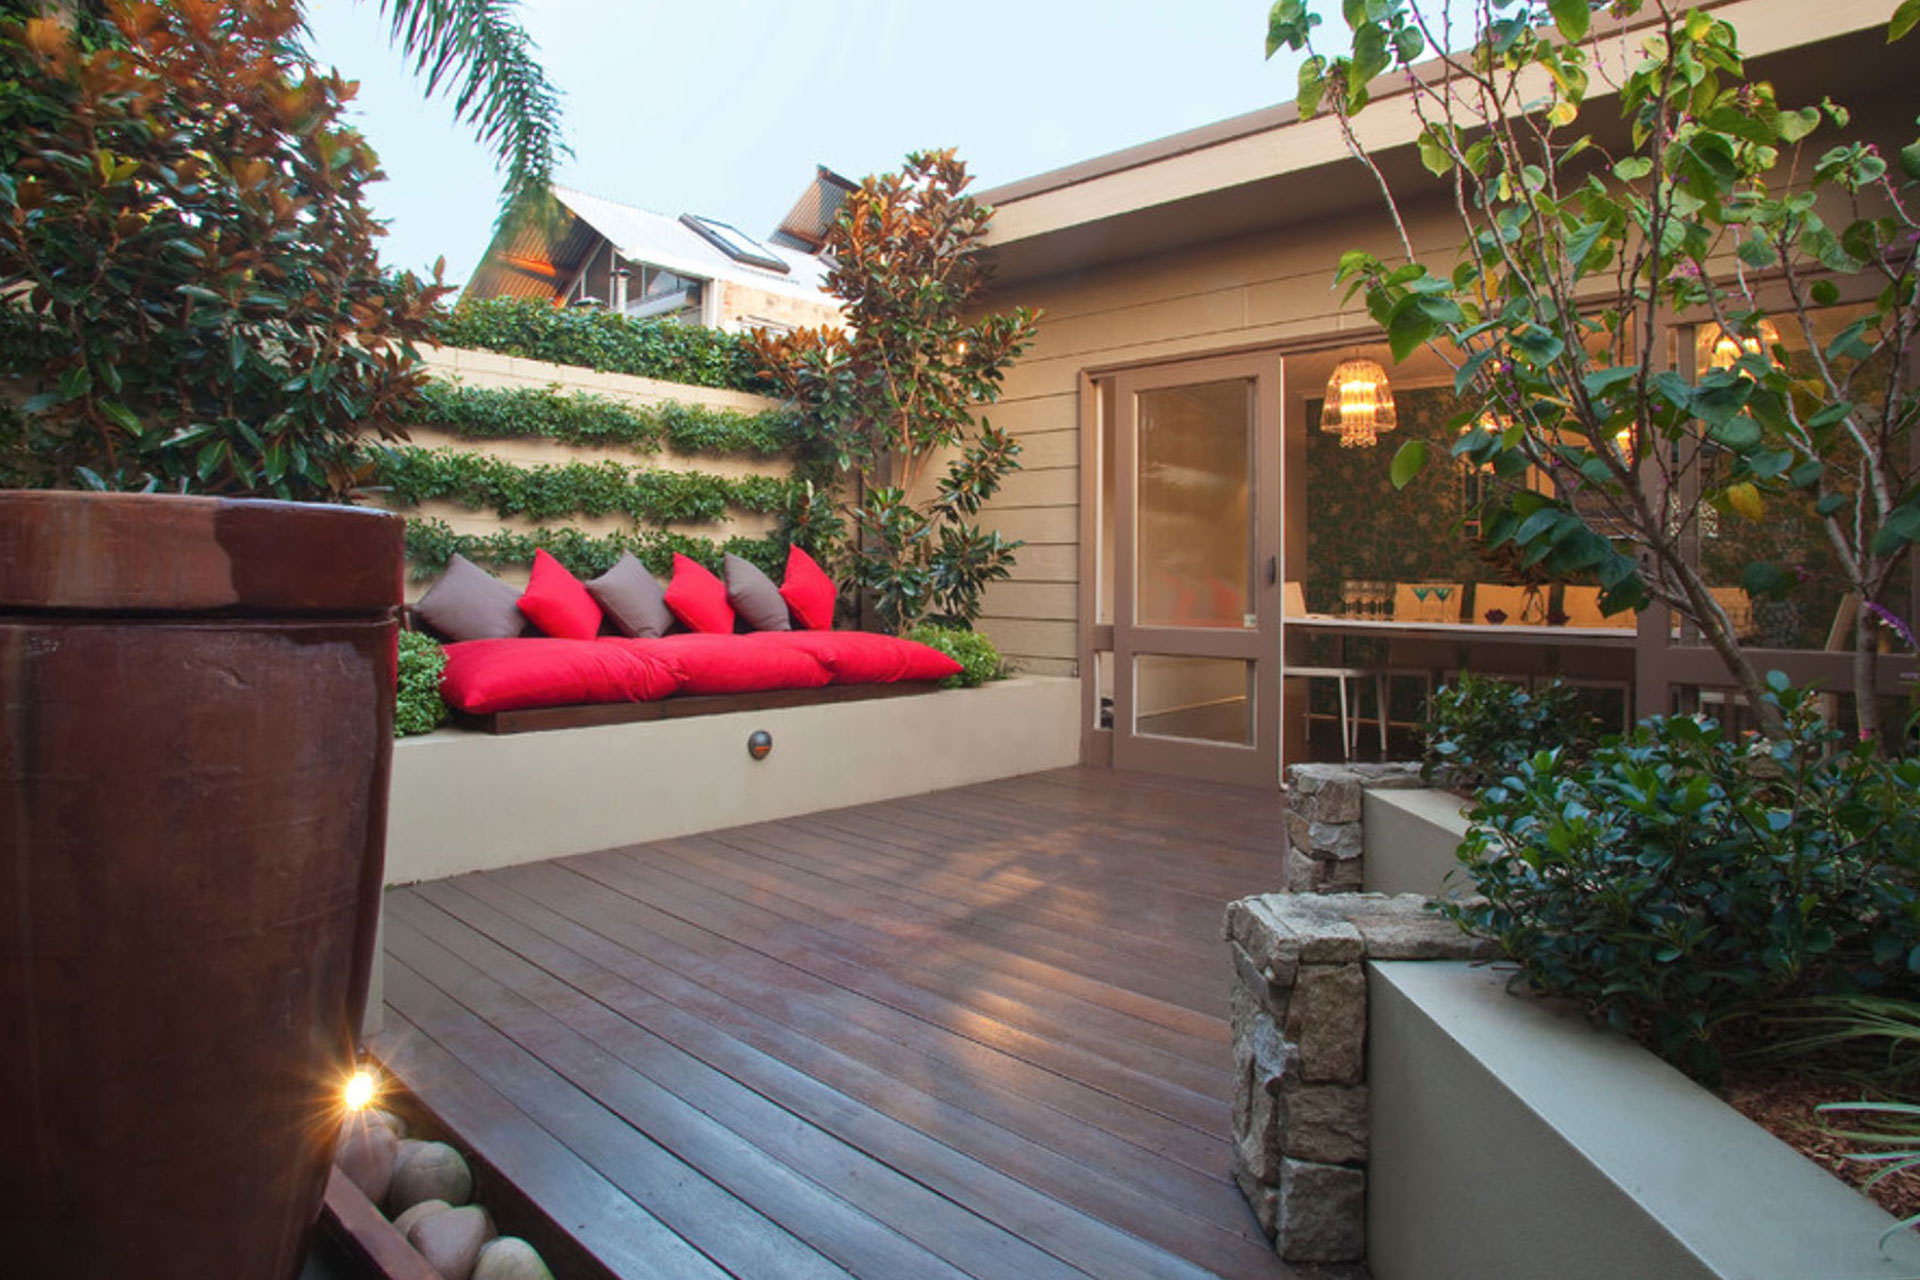 Outdoor Spaces Enchanting 5 Ideas For Making A Big Impact In A Small Outdoor Space Inspiration